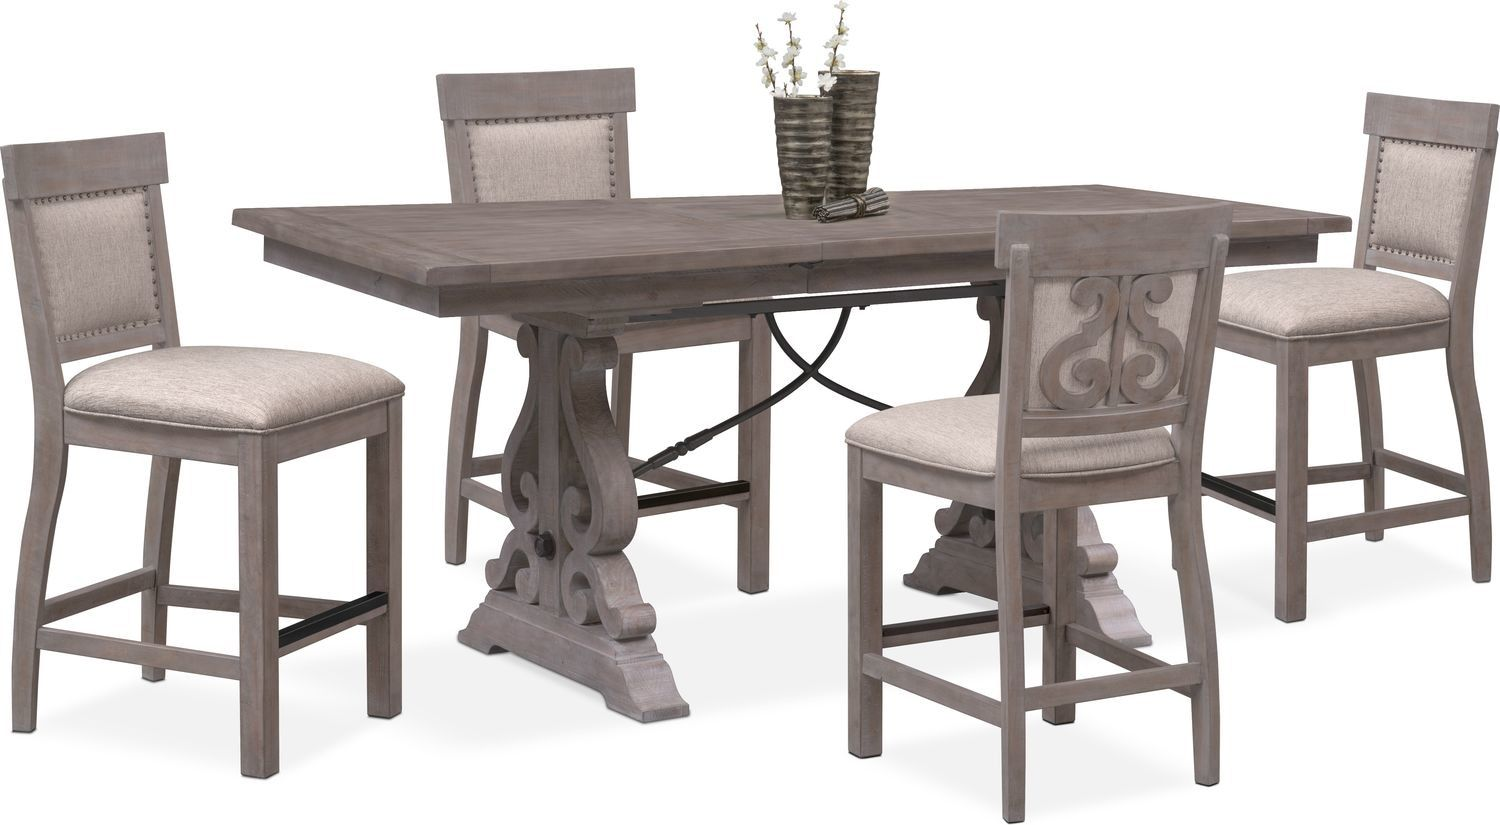 5167091d4a030 Charthouse Counter-Height Dining Table And 4 Upholstered Stools - Gray